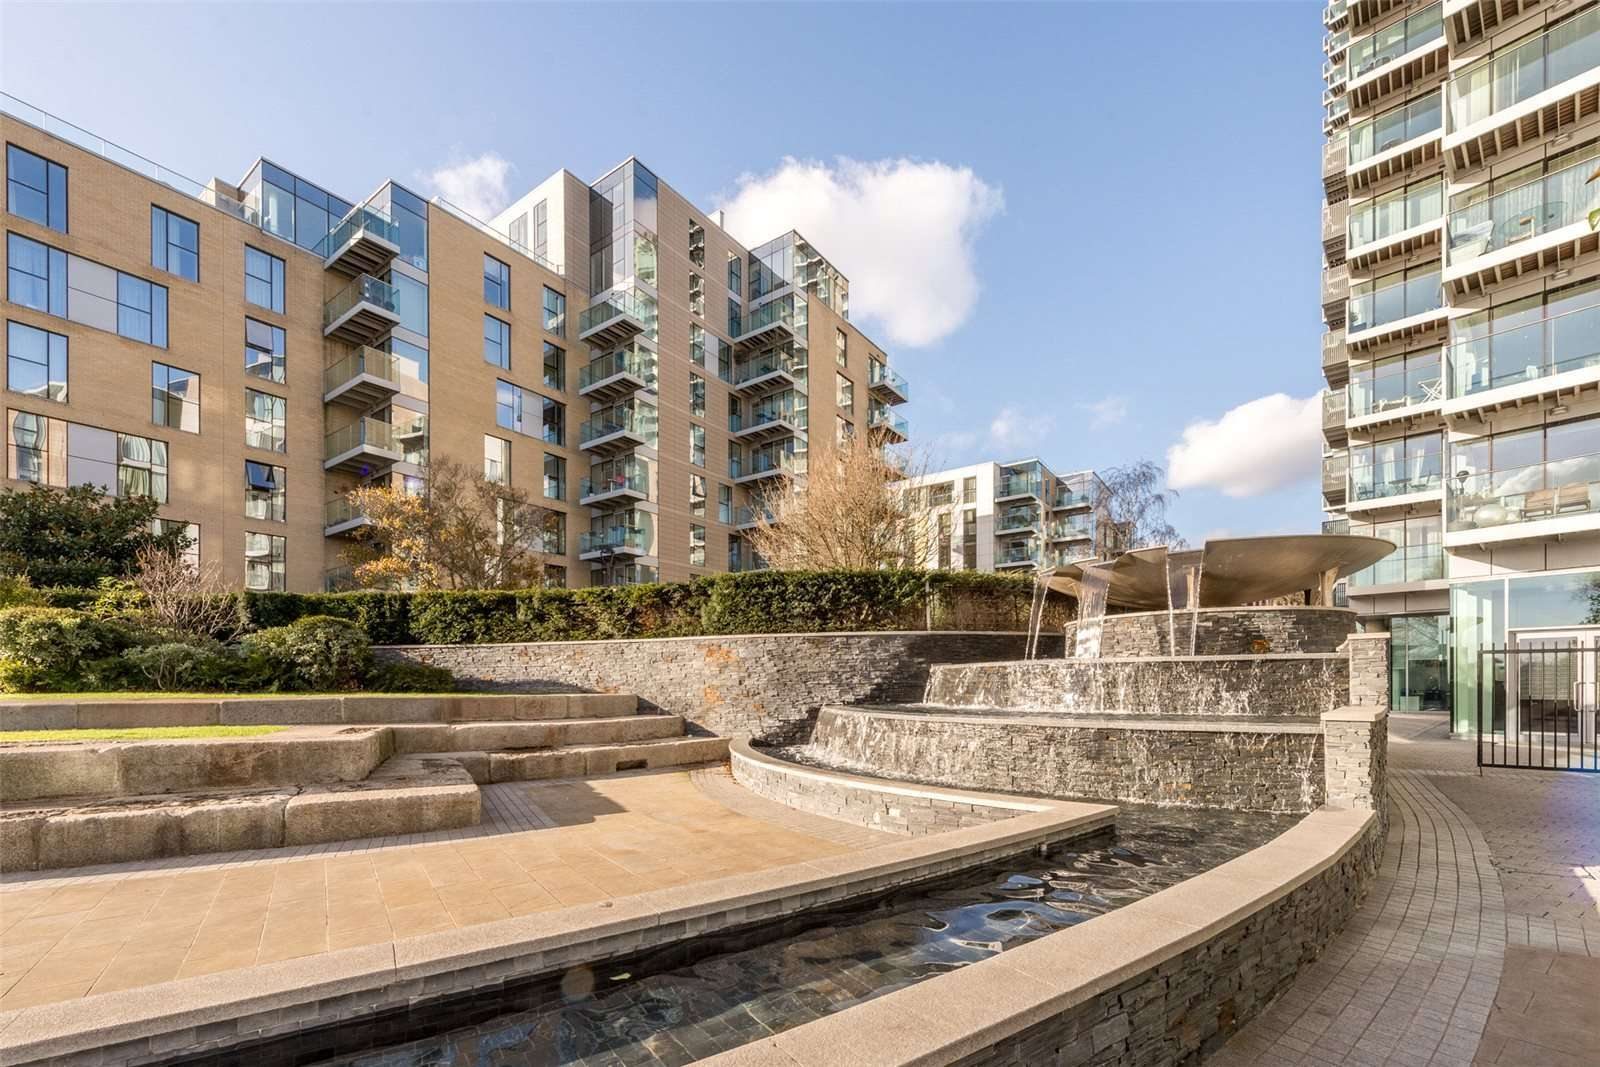 Kingly Building, Woodberry Down, Finsbury, London, N4